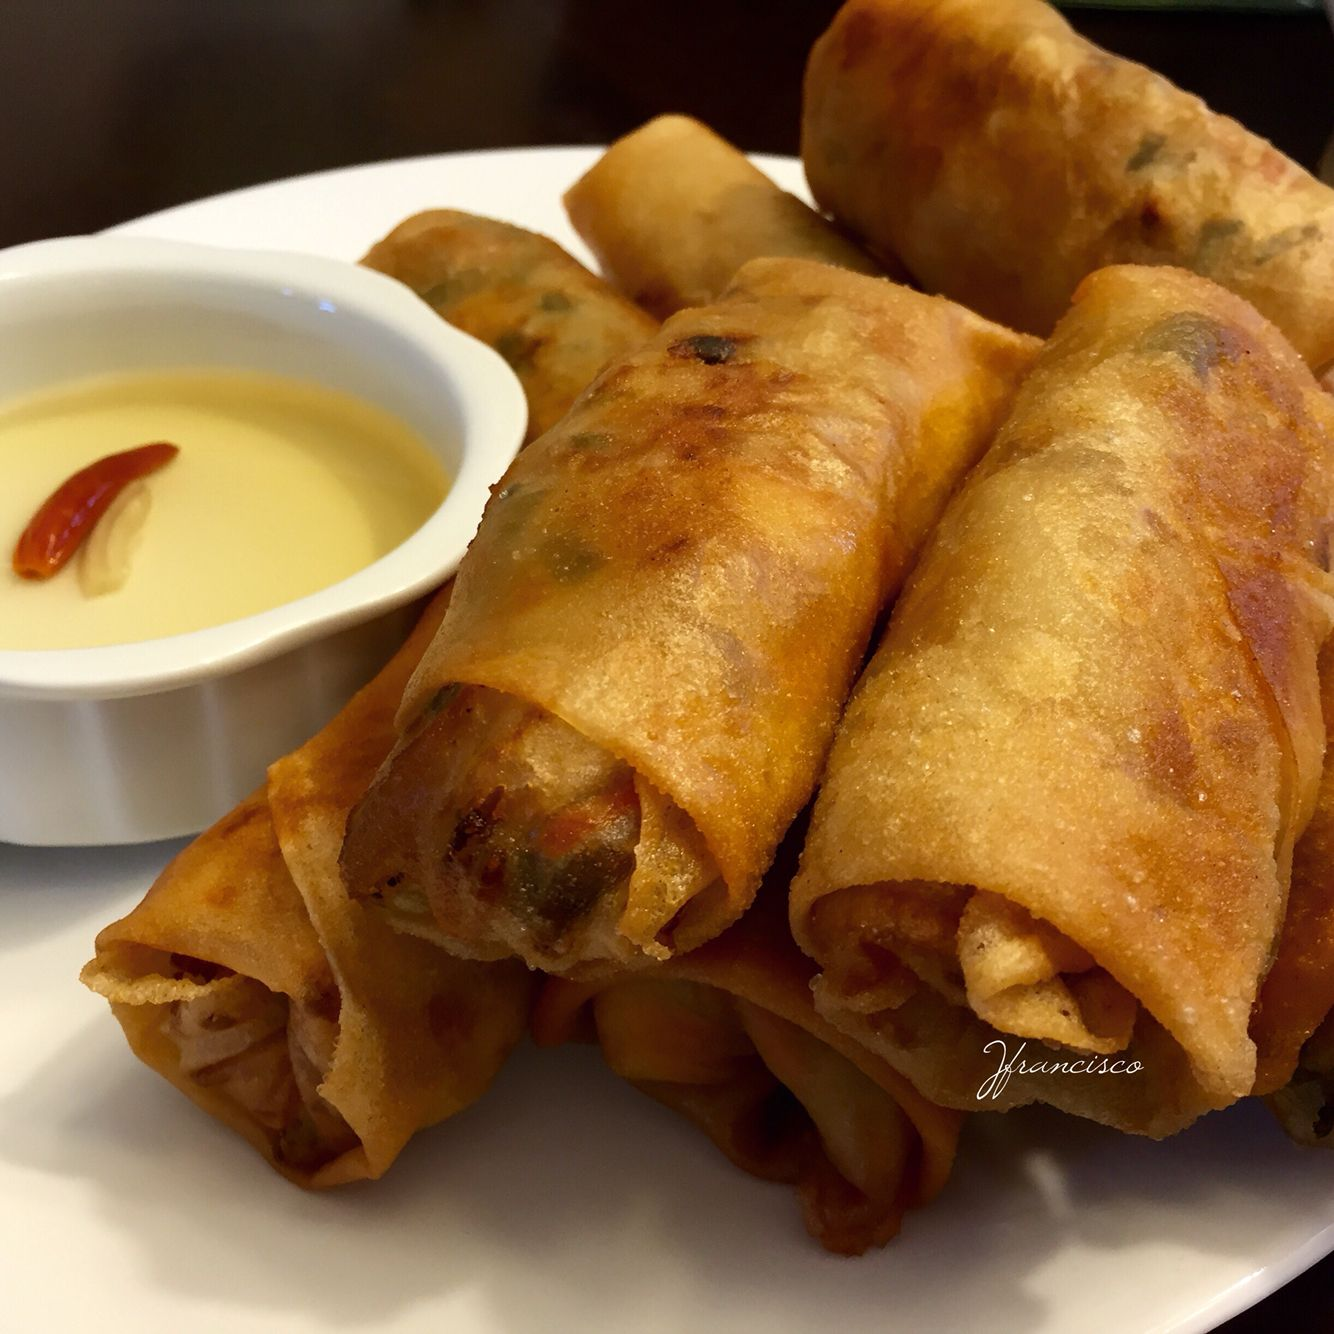 """Lumpiang prito (""""fried vegetable spring roll""""), consists of a briskly fried pancake filled with sautéed bean sprouts and various other vegetables such as green beans and carrots. Small morsels of meat, seafood or tofu may also be added. Lumpiang prito is dipped in a spicy vinegar with chilis."""